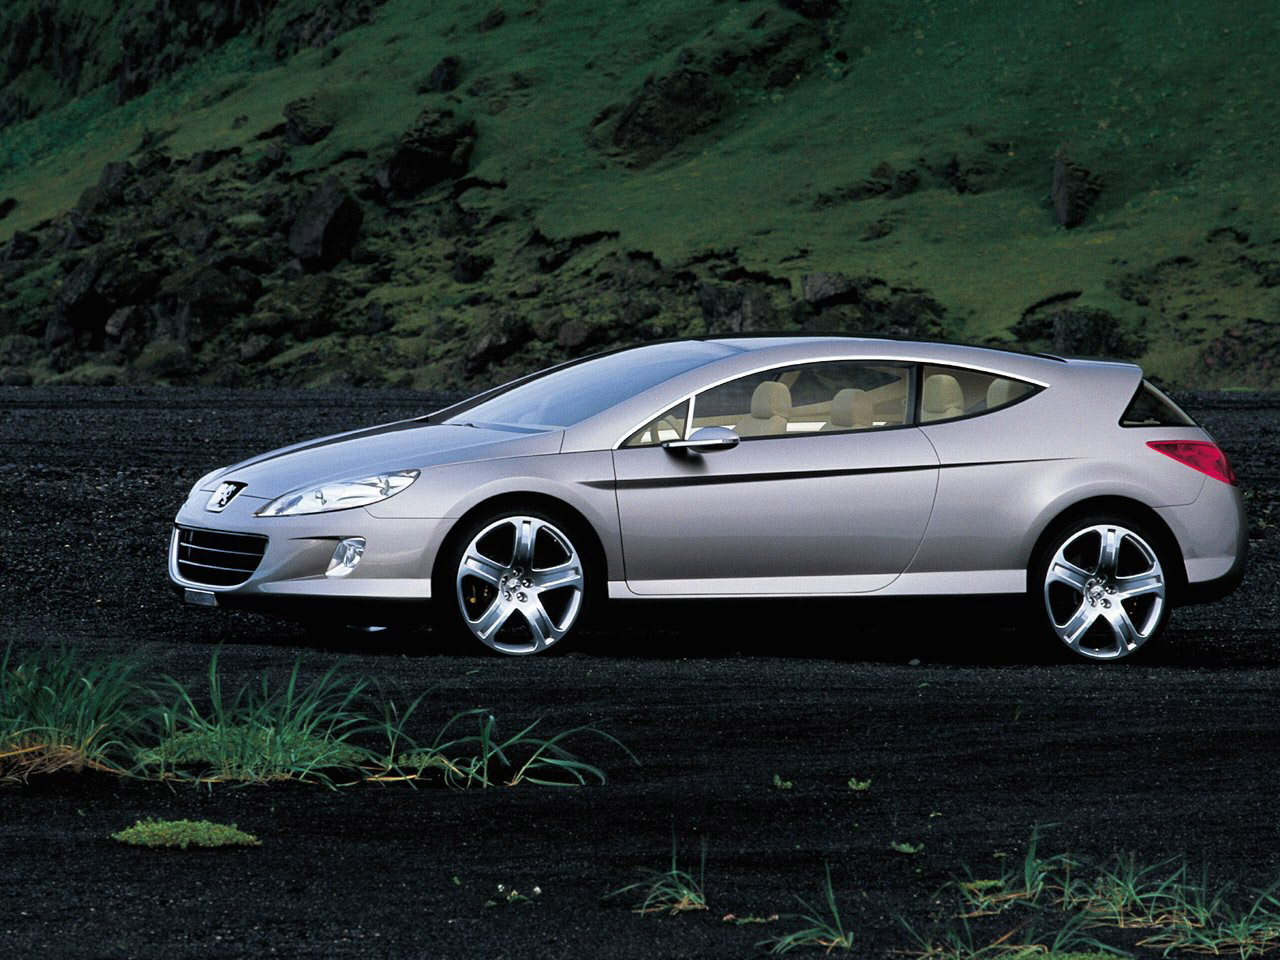 2019 Peugeot 407 Elixir Concept photo - 4